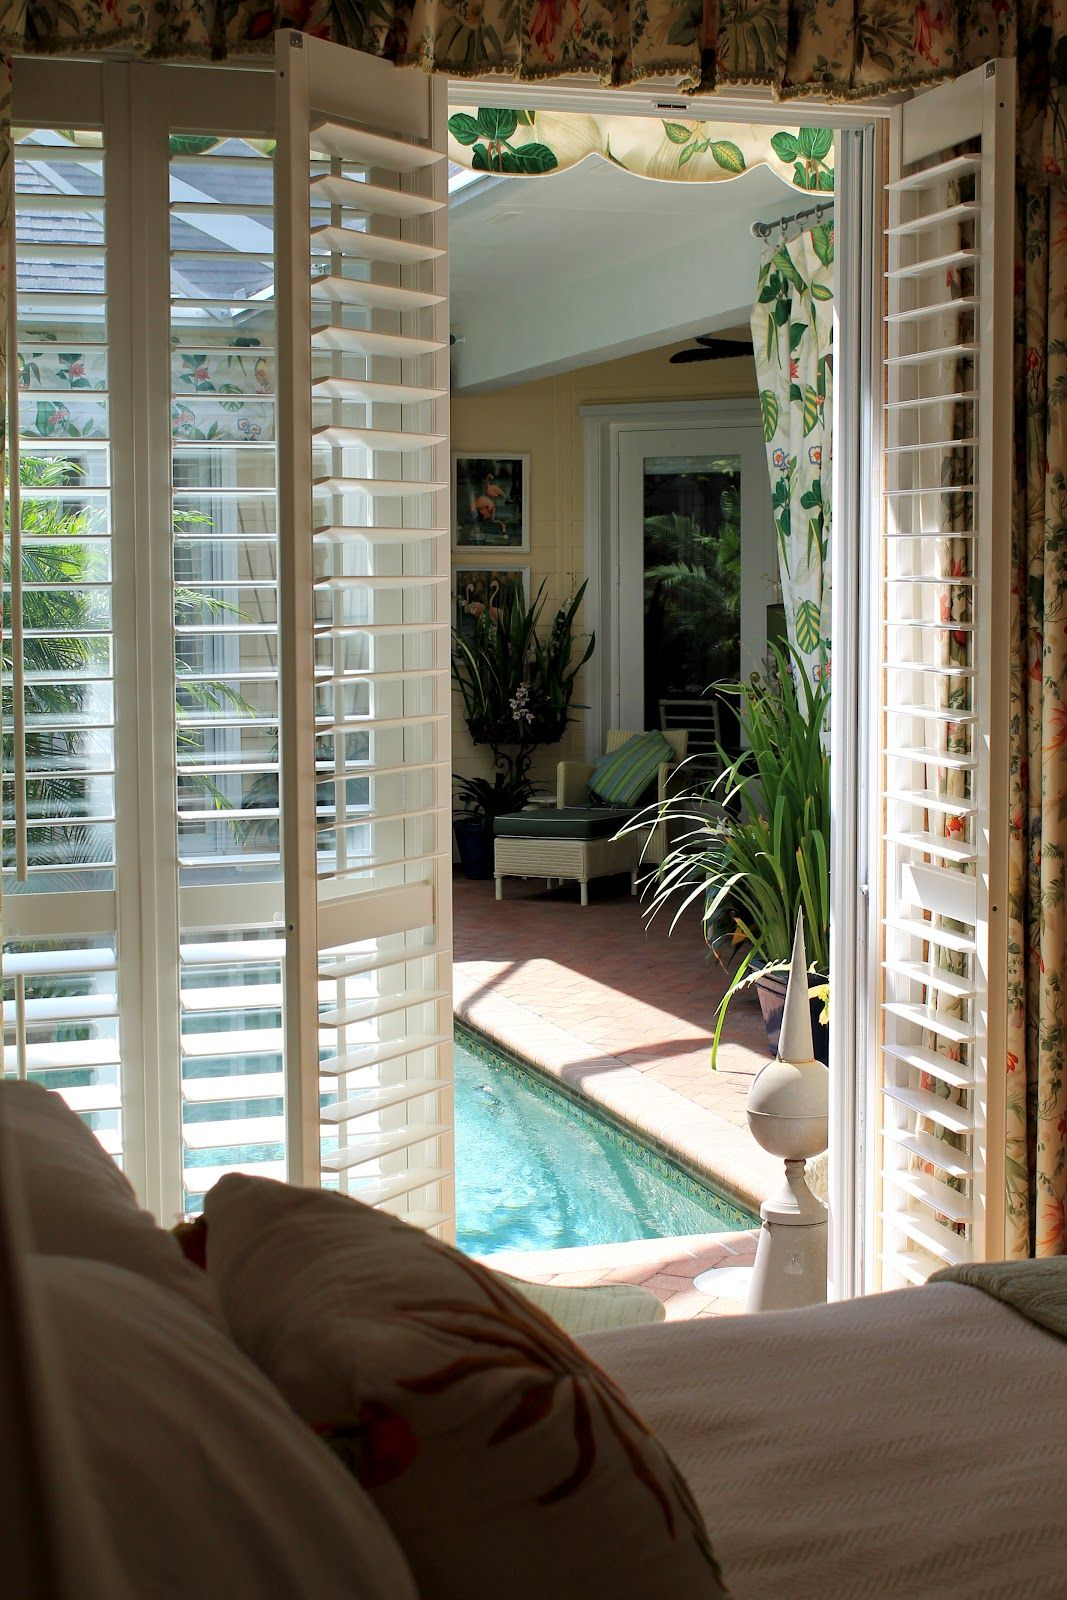 Betsy Speerts Blog Plantation Shutters On Sliders A Close Up